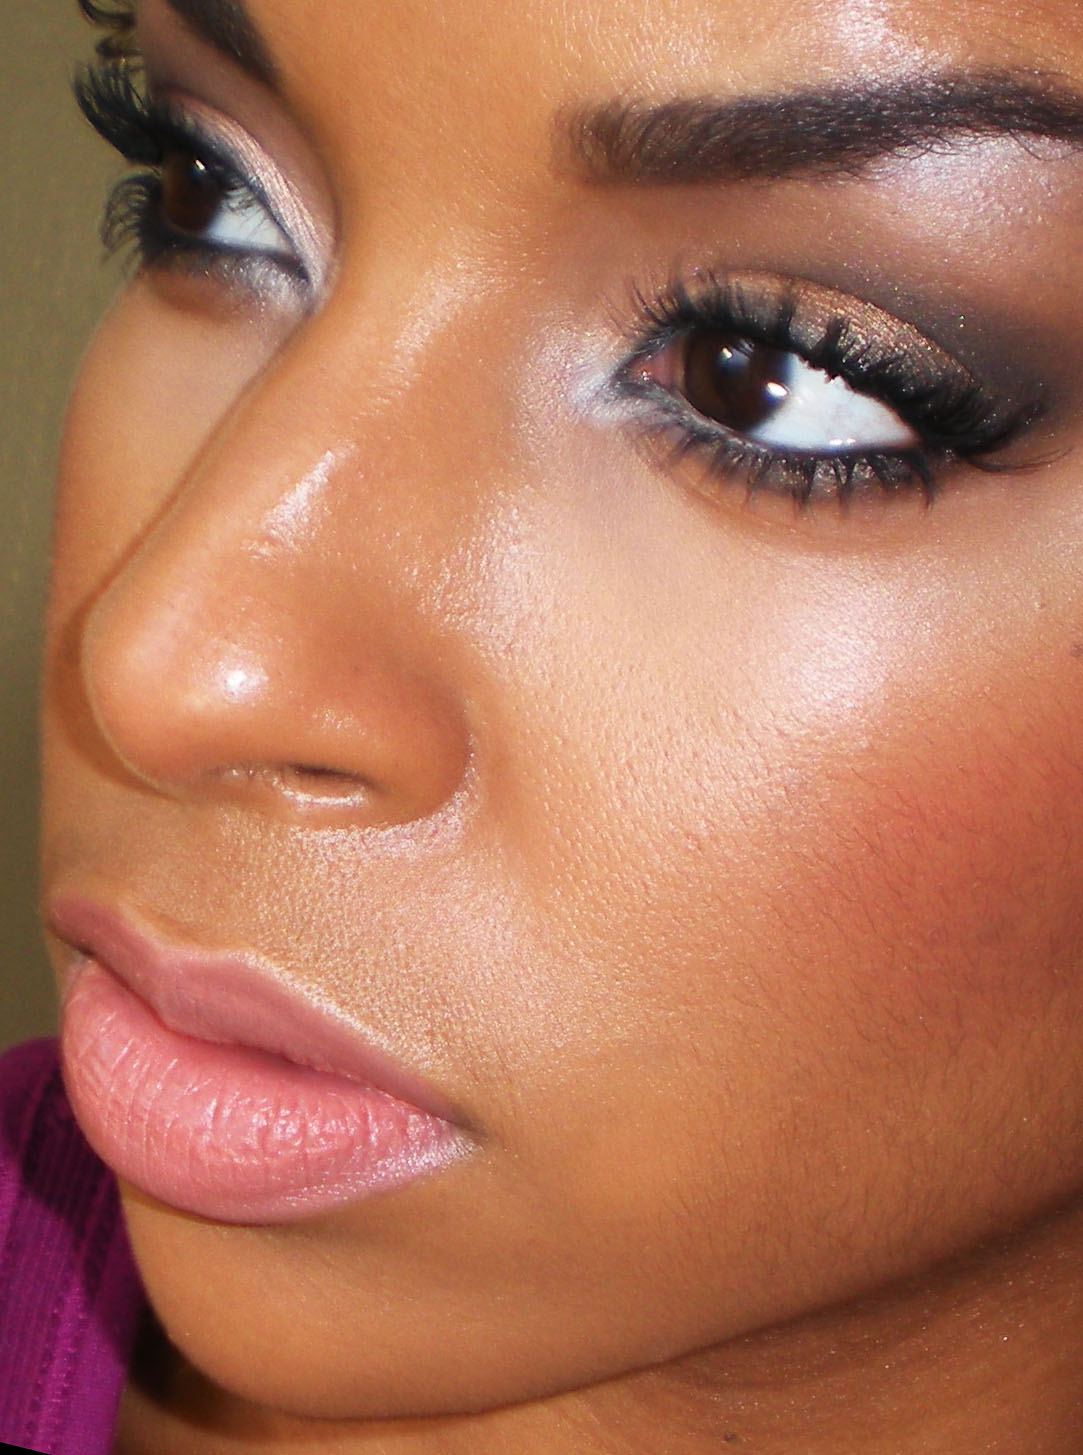 Afternoon Wedding Makeup : Bridal Makeup Series..Evening Beauty by Lee